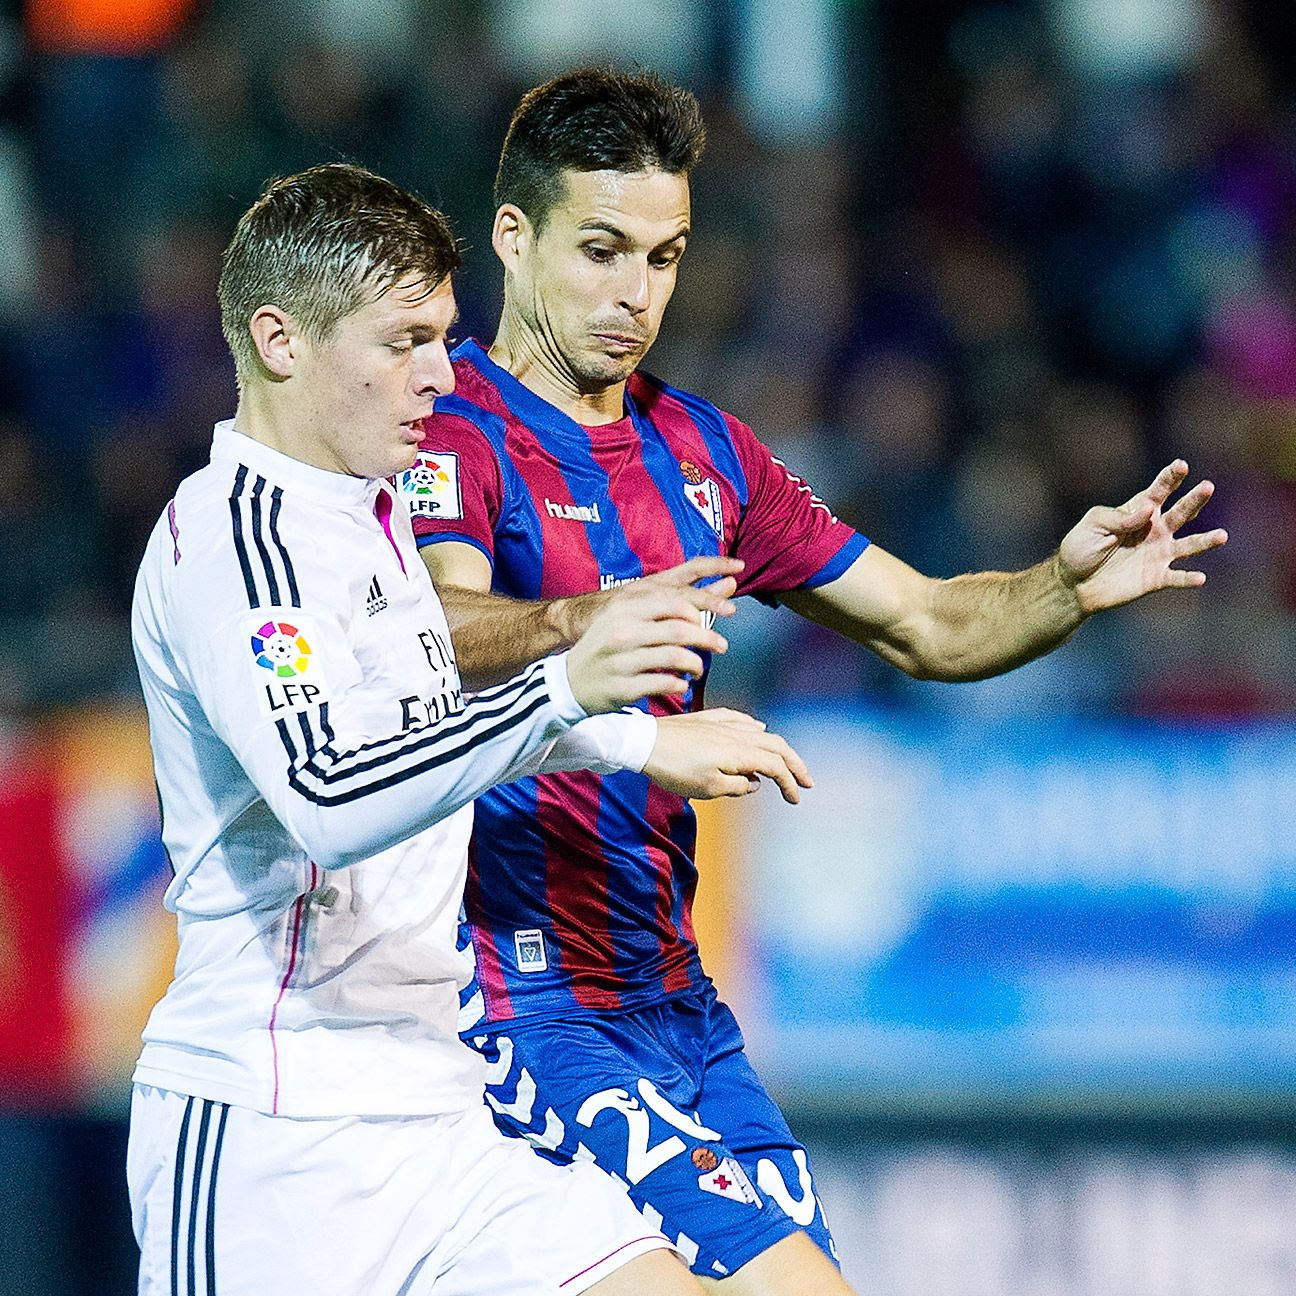 Real Madrid controlled the midfield game versus Eibar thanks to the efforts of Toni Kroos.